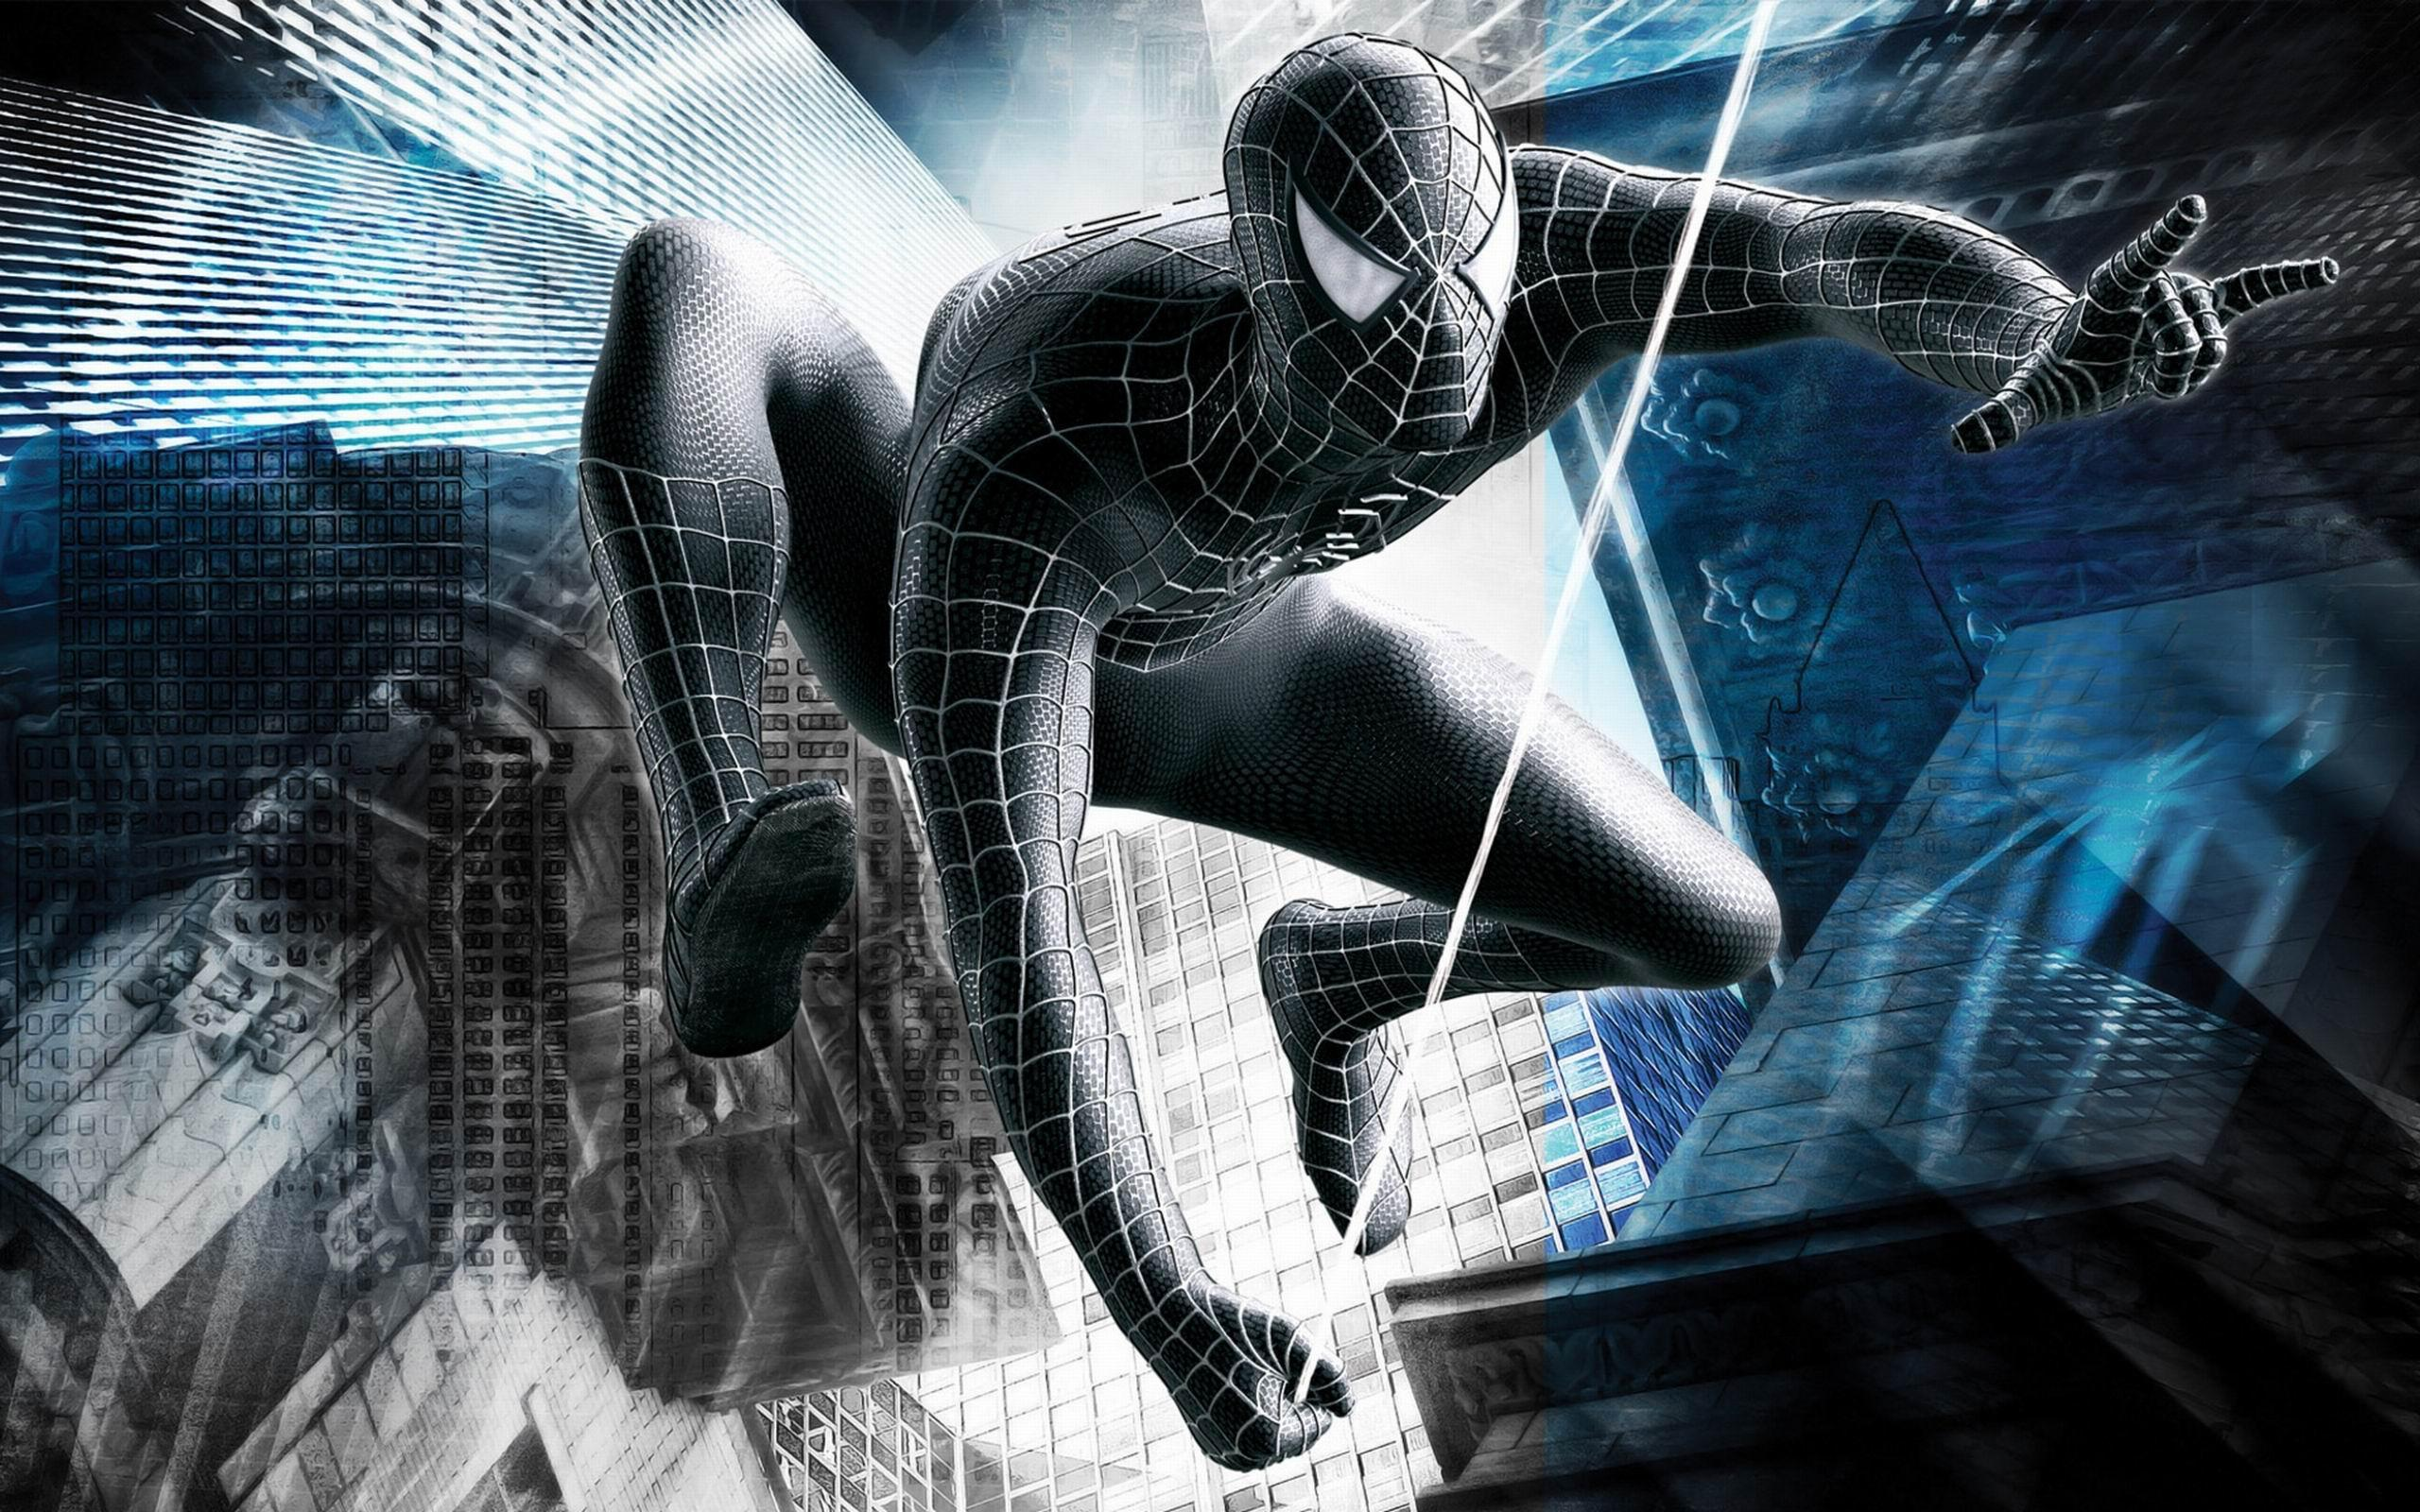 Spiderman Wallpapers - Full HD wallpaper search - page 8